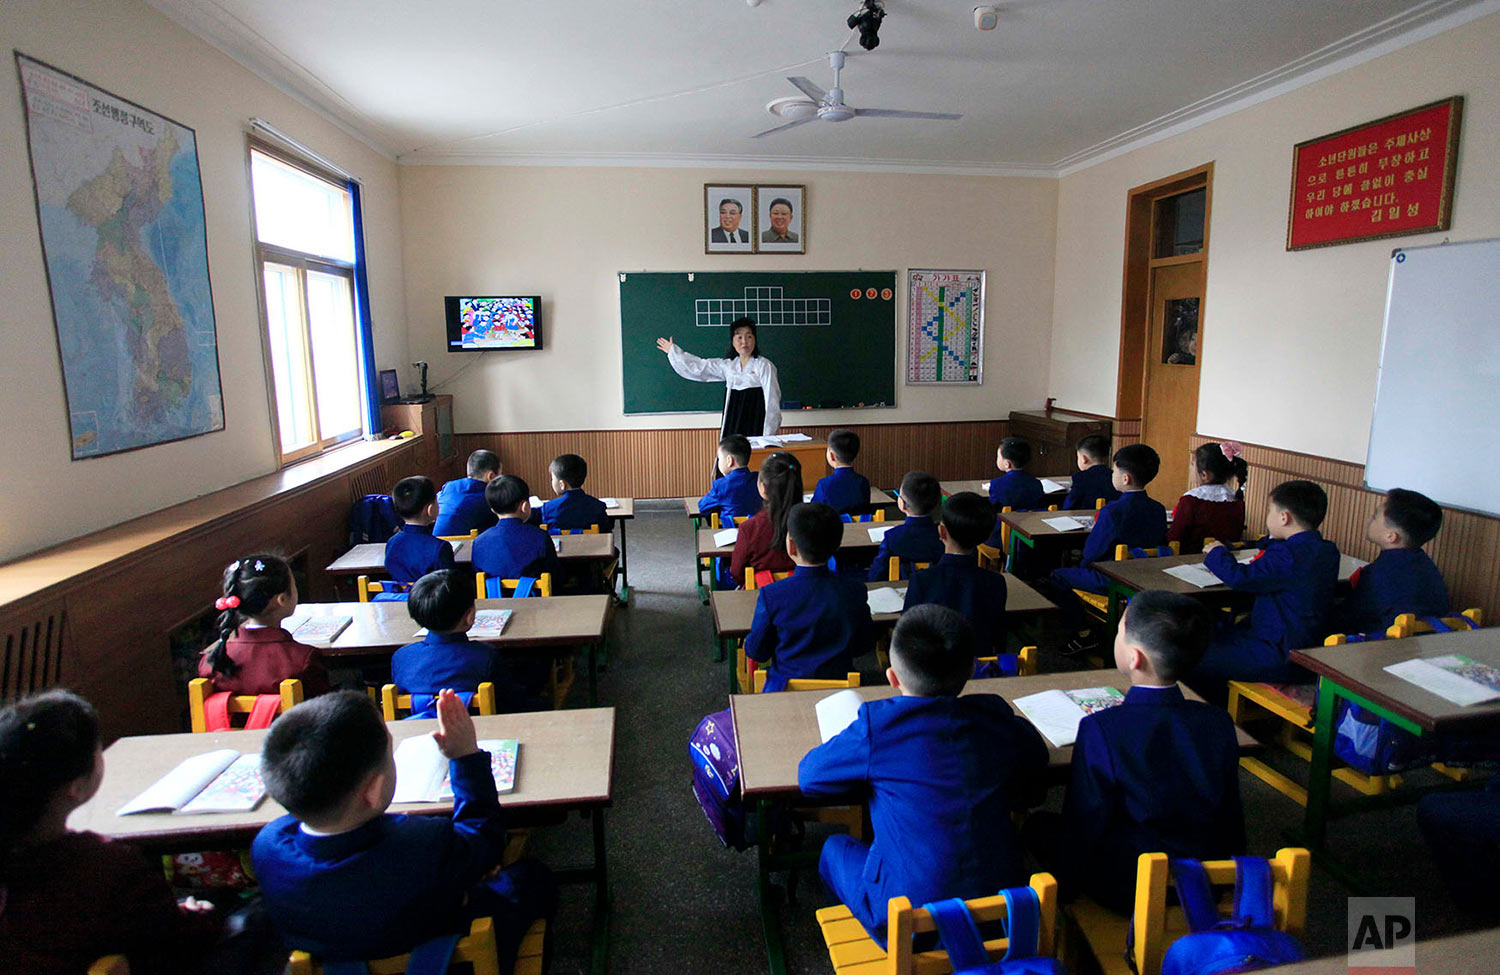 Students attend their first day of class at the Ryonhwa primary school in Pyongyang, North Korea, on April 2, 2018. (AP Photo/Jon Chol Jin)